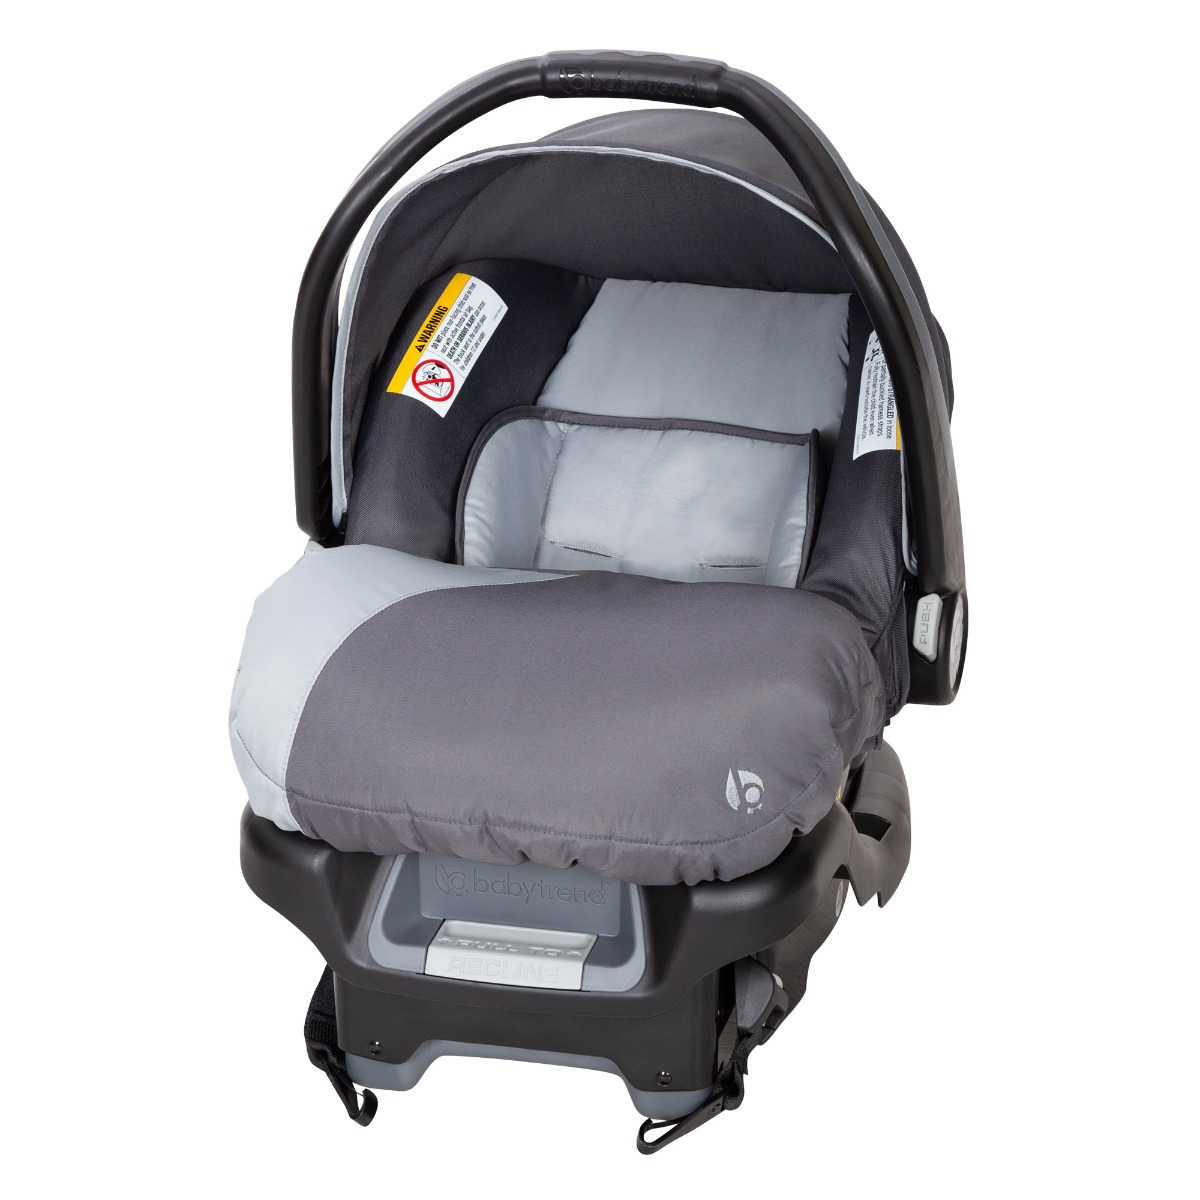 Baby Trend Ally™ 35 Infant Car Seat - Casey